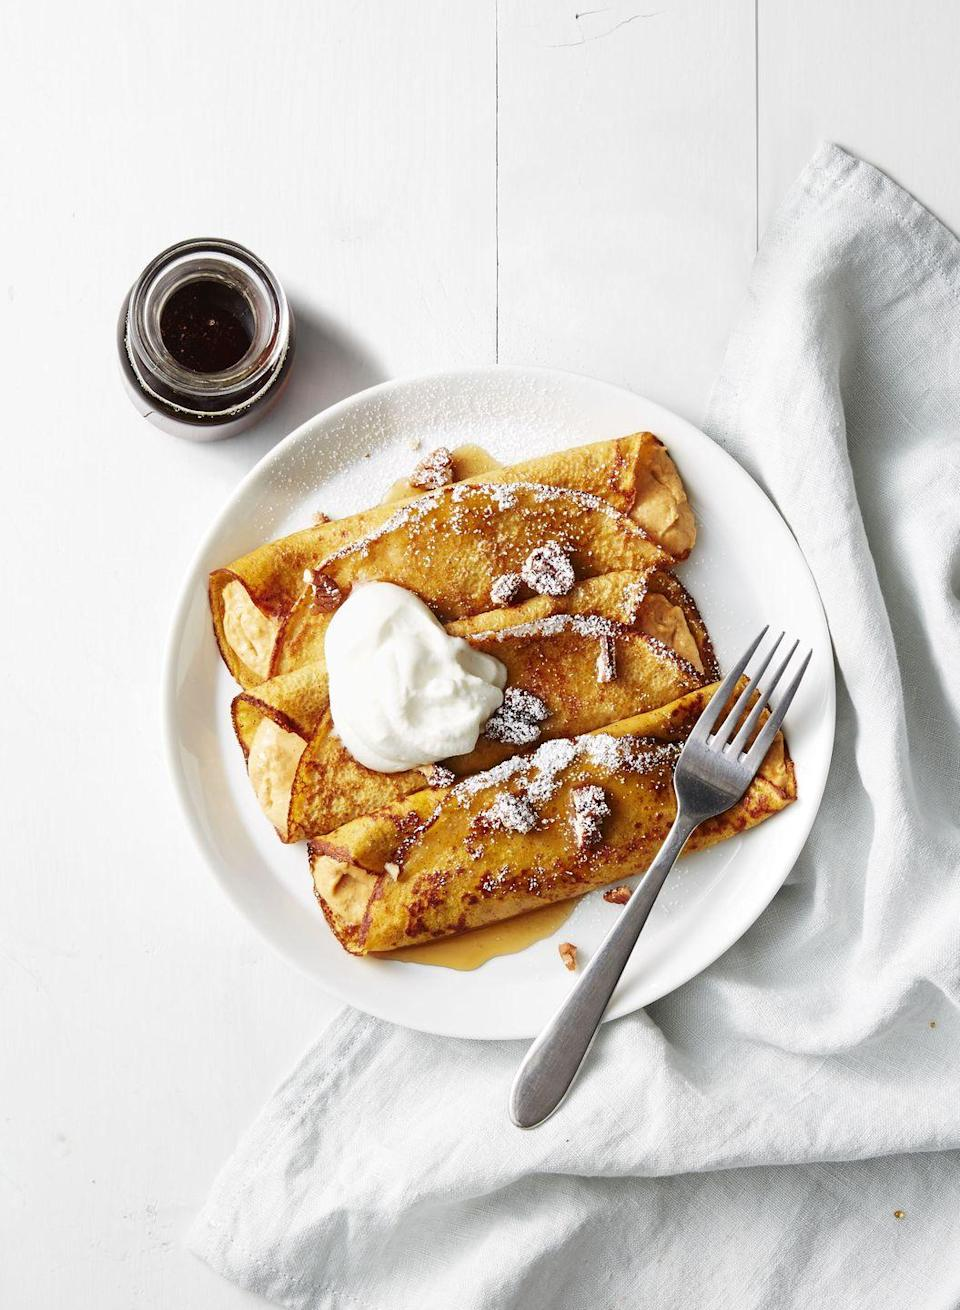 "<p>These pumpkin-cream cheese crêpes are spiked with maple syrup for the perfect fall dessert ... or even breakfast!</p><p><em><a href=""https://www.goodhousekeeping.com/food-recipes/a41238/pumpkin-cheesecake-crepes-recipe/"" rel=""nofollow noopener"" target=""_blank"" data-ylk=""slk:Get the recipe for Pumpkin Cheesecake Crêpes »"" class=""link rapid-noclick-resp"">Get the recipe for Pumpkin Cheesecake Crêpes »</a></em> </p>"